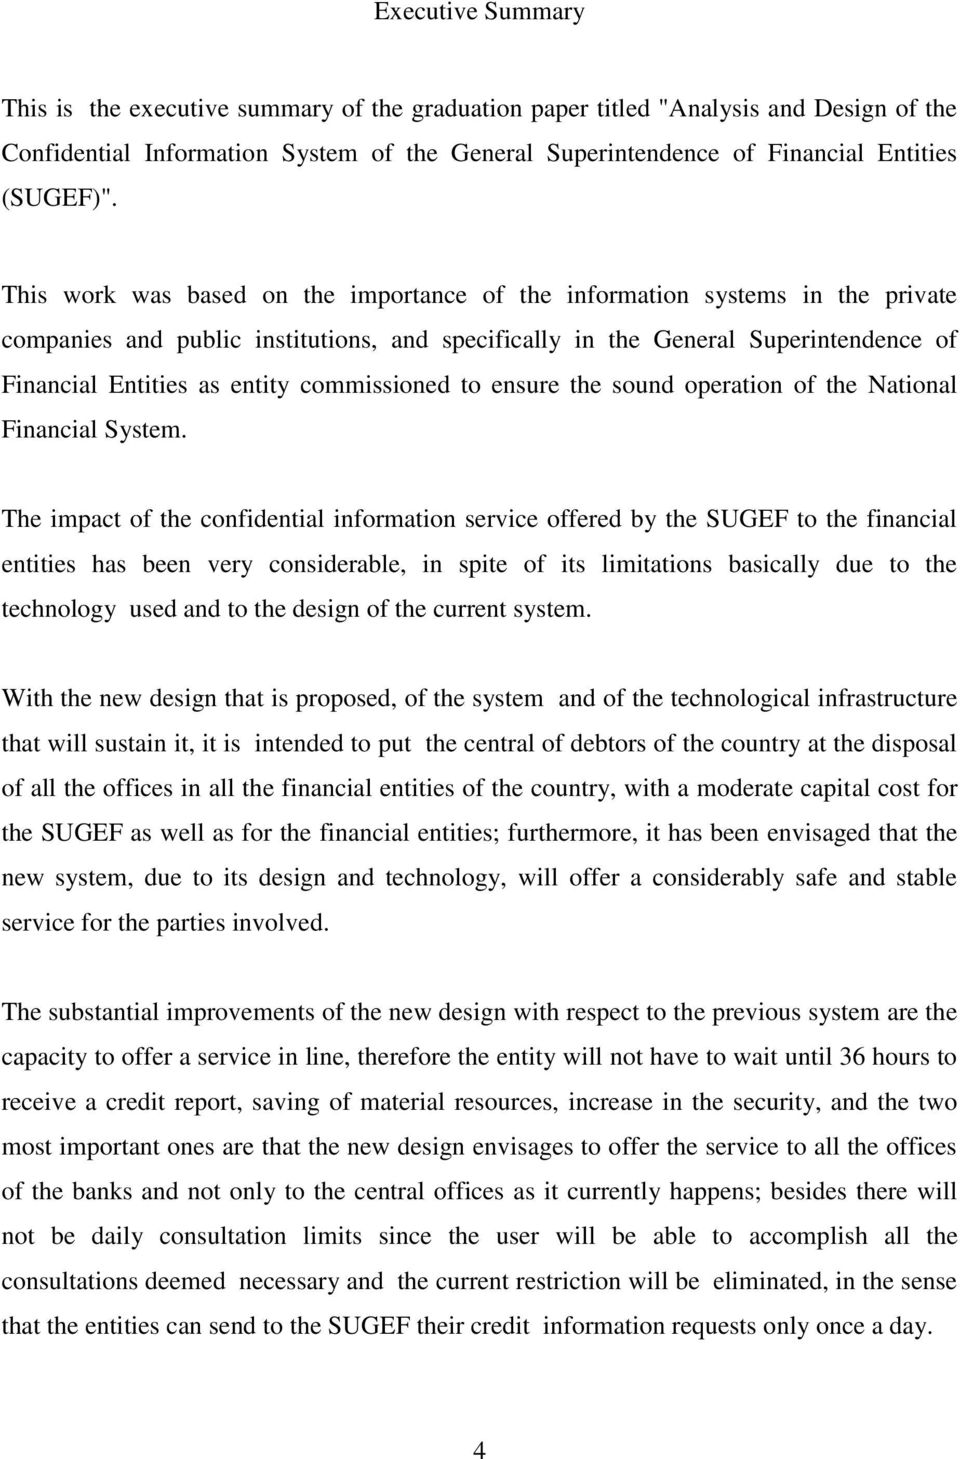 This work was based on the importance of the information systems in the private companies and public institutions, and specifically in the General Superintendence of Financial Entities as entity